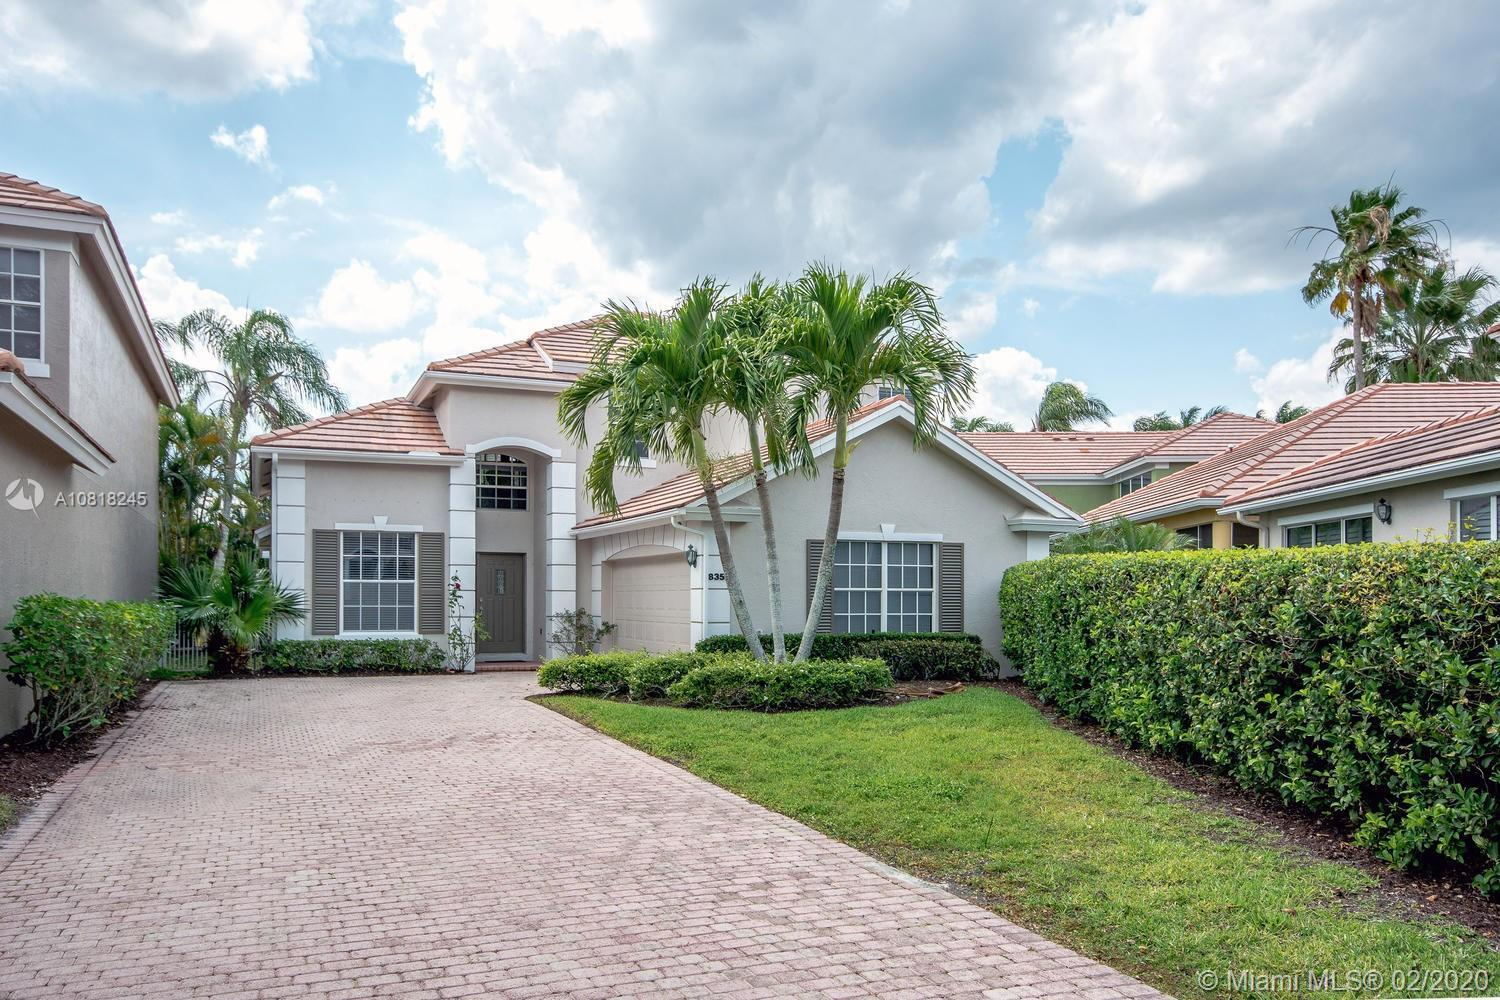 Located in Ibis Golf & Country Club, this home has 3 Bedrooms, 2.5 Baths and Loft. It boosts a sweep